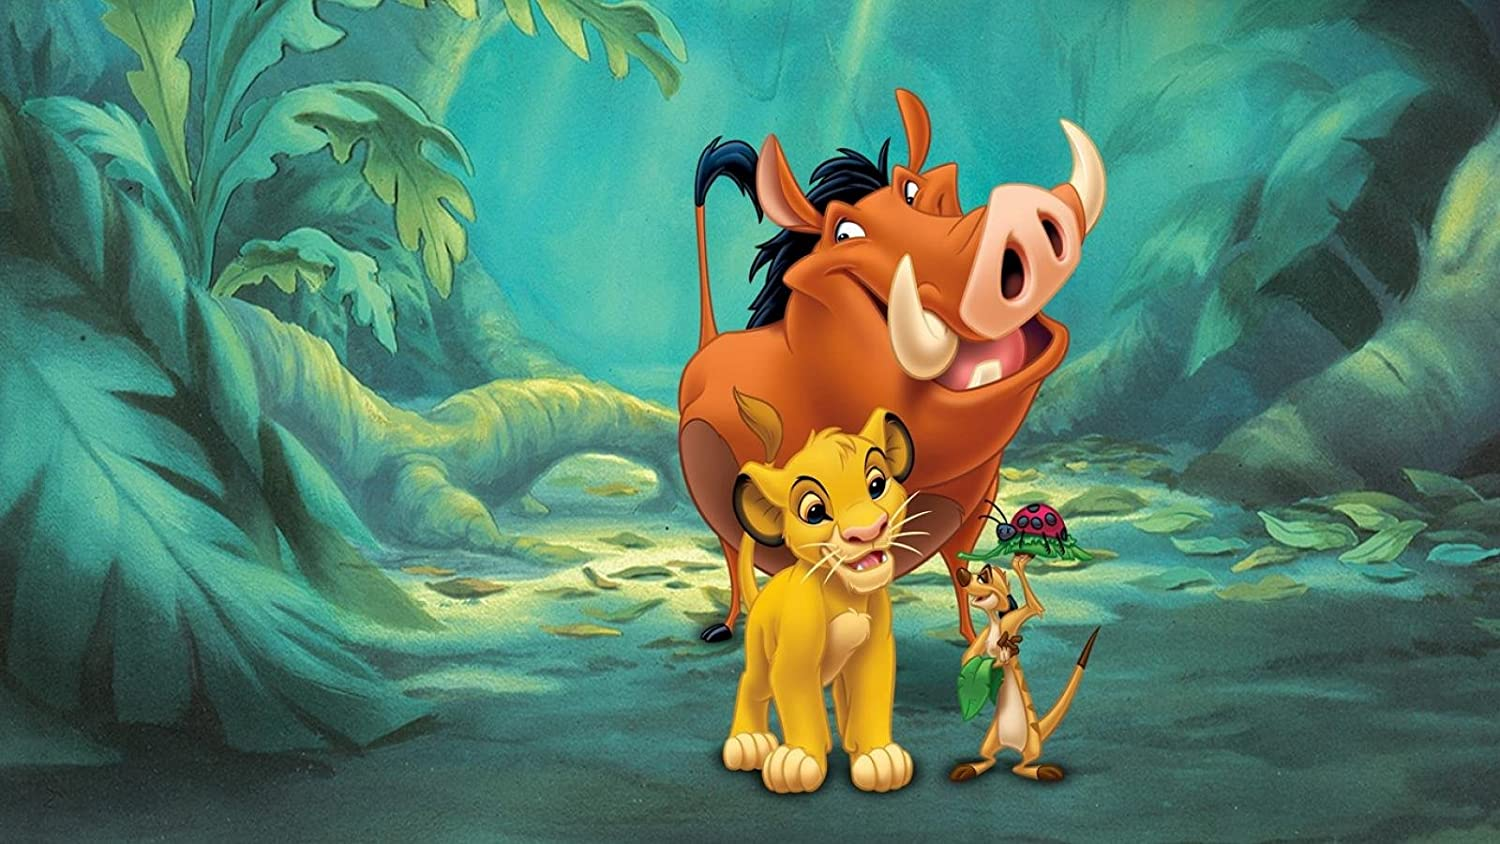 Posterhouzz Movie The Lion King Simba Hd Wallpaper Background Fine Art Paper Print Poster Mov1712 Amazon In Home Kitchen